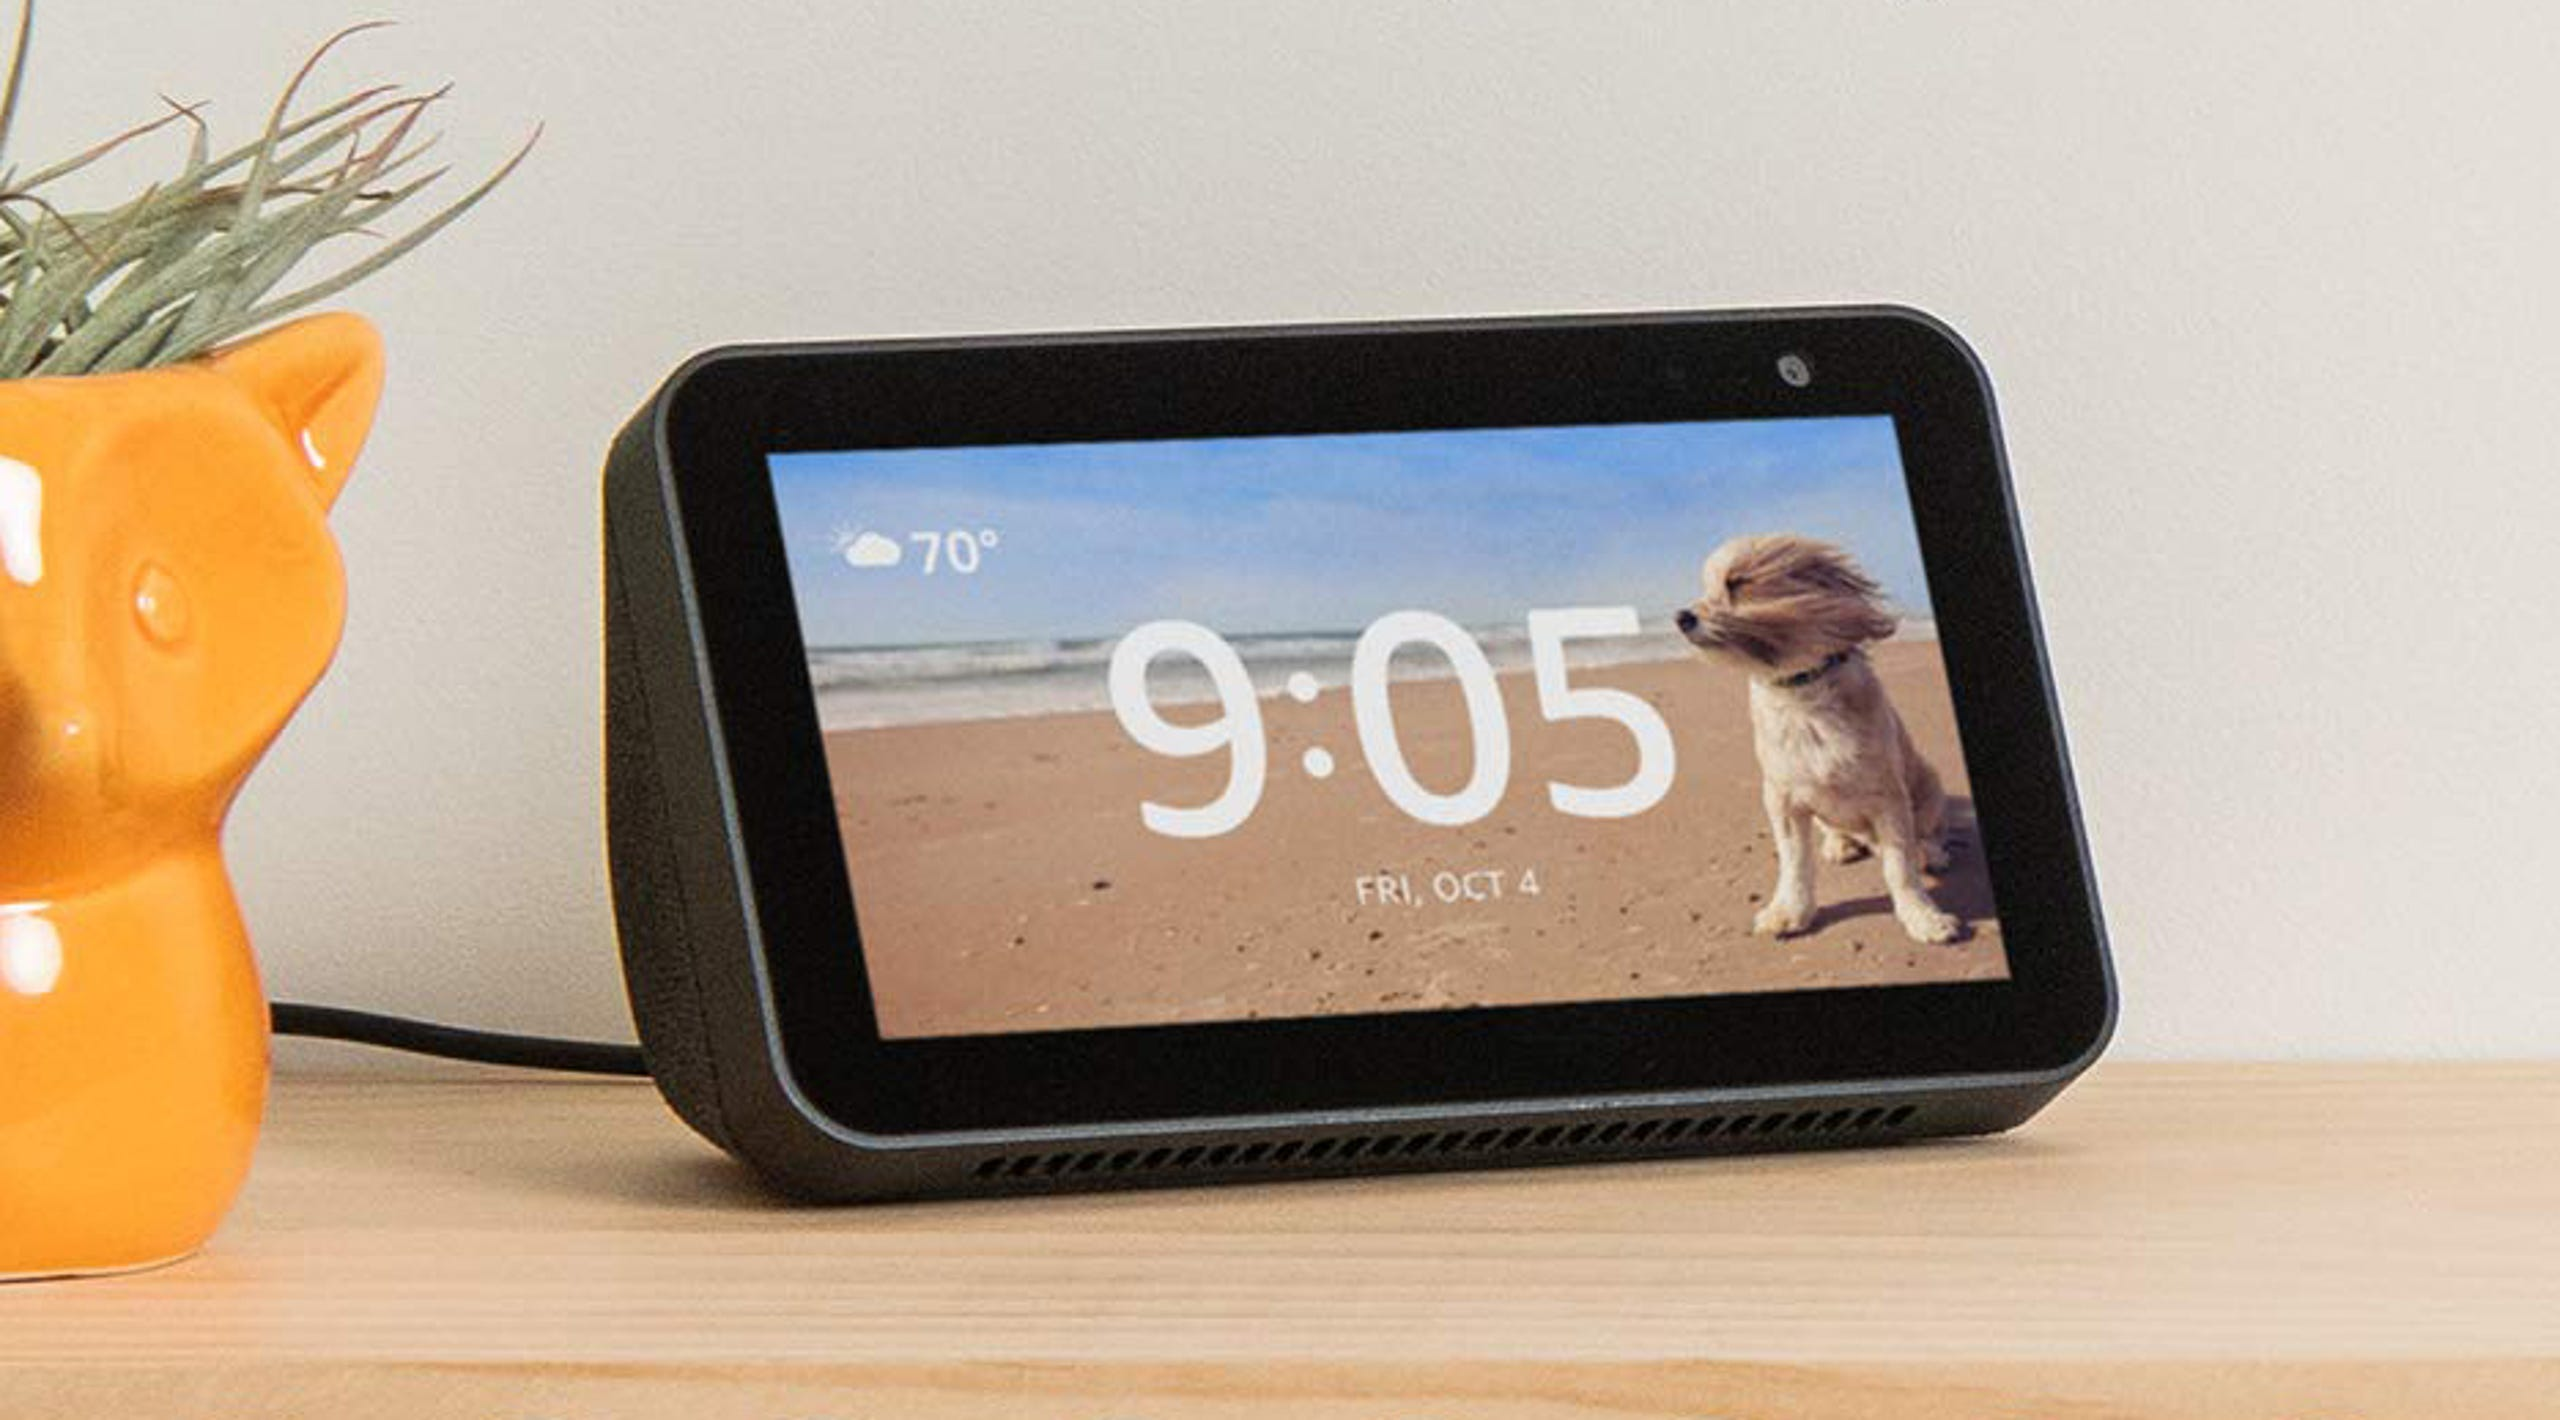 "If you love the power of Alexa but wish you could see your reminders instead of hearing them sometimes, the Echo Show 5 is a primo choice. It&rsquo;s small and adorable, but the screen offers so much more than the voice-only Dot. (<a href=""https://www.amazon.com/dp/B07HZLHPKP/ref=as_li_ss_tl?ref=ODS_v2_FS_AUCC&amp;linkCode=ll1&amp;tag=usatgallery-20&amp;linkId=cd6c2a1579434197b48f582e521cfb3b&amp;language=en_US"">$89.99 on Amazon</a>)"